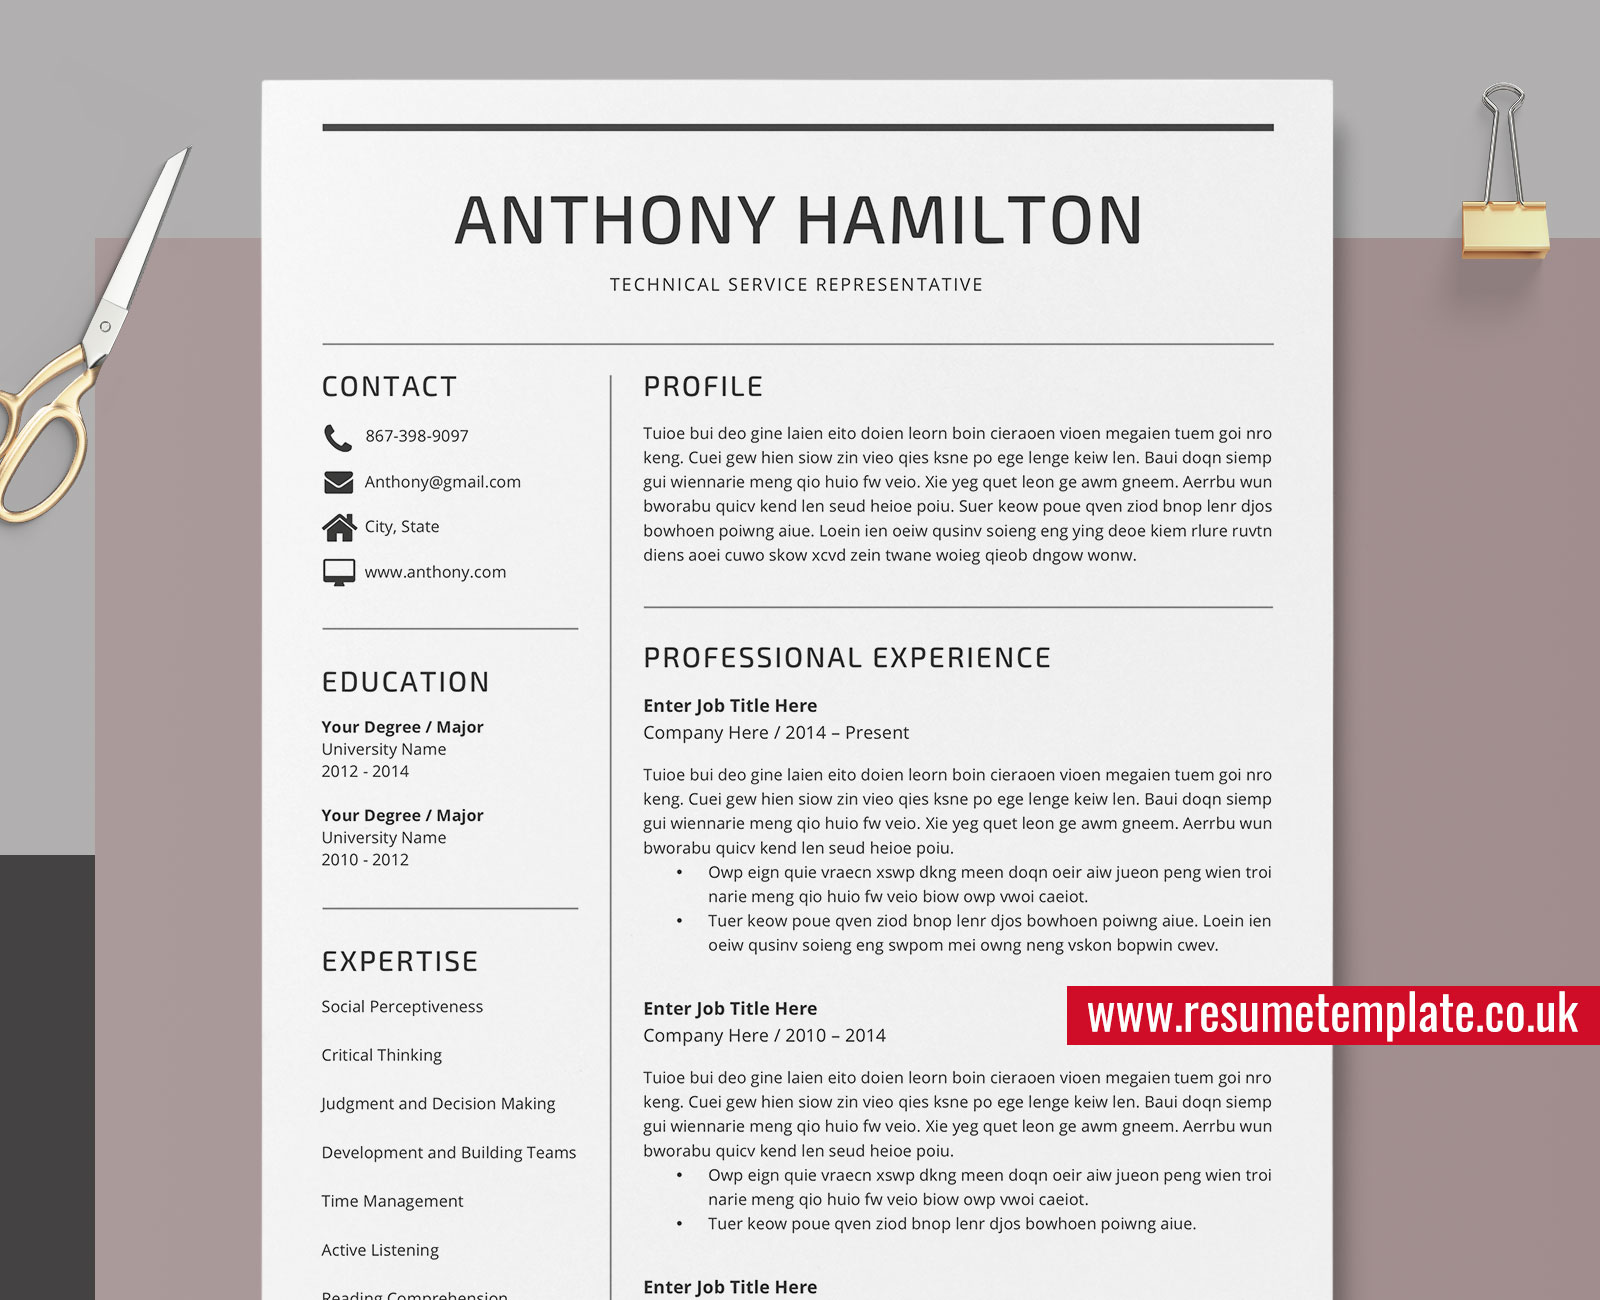 Simple Resume Cover Letter Templates from www.resumetemplate.co.uk